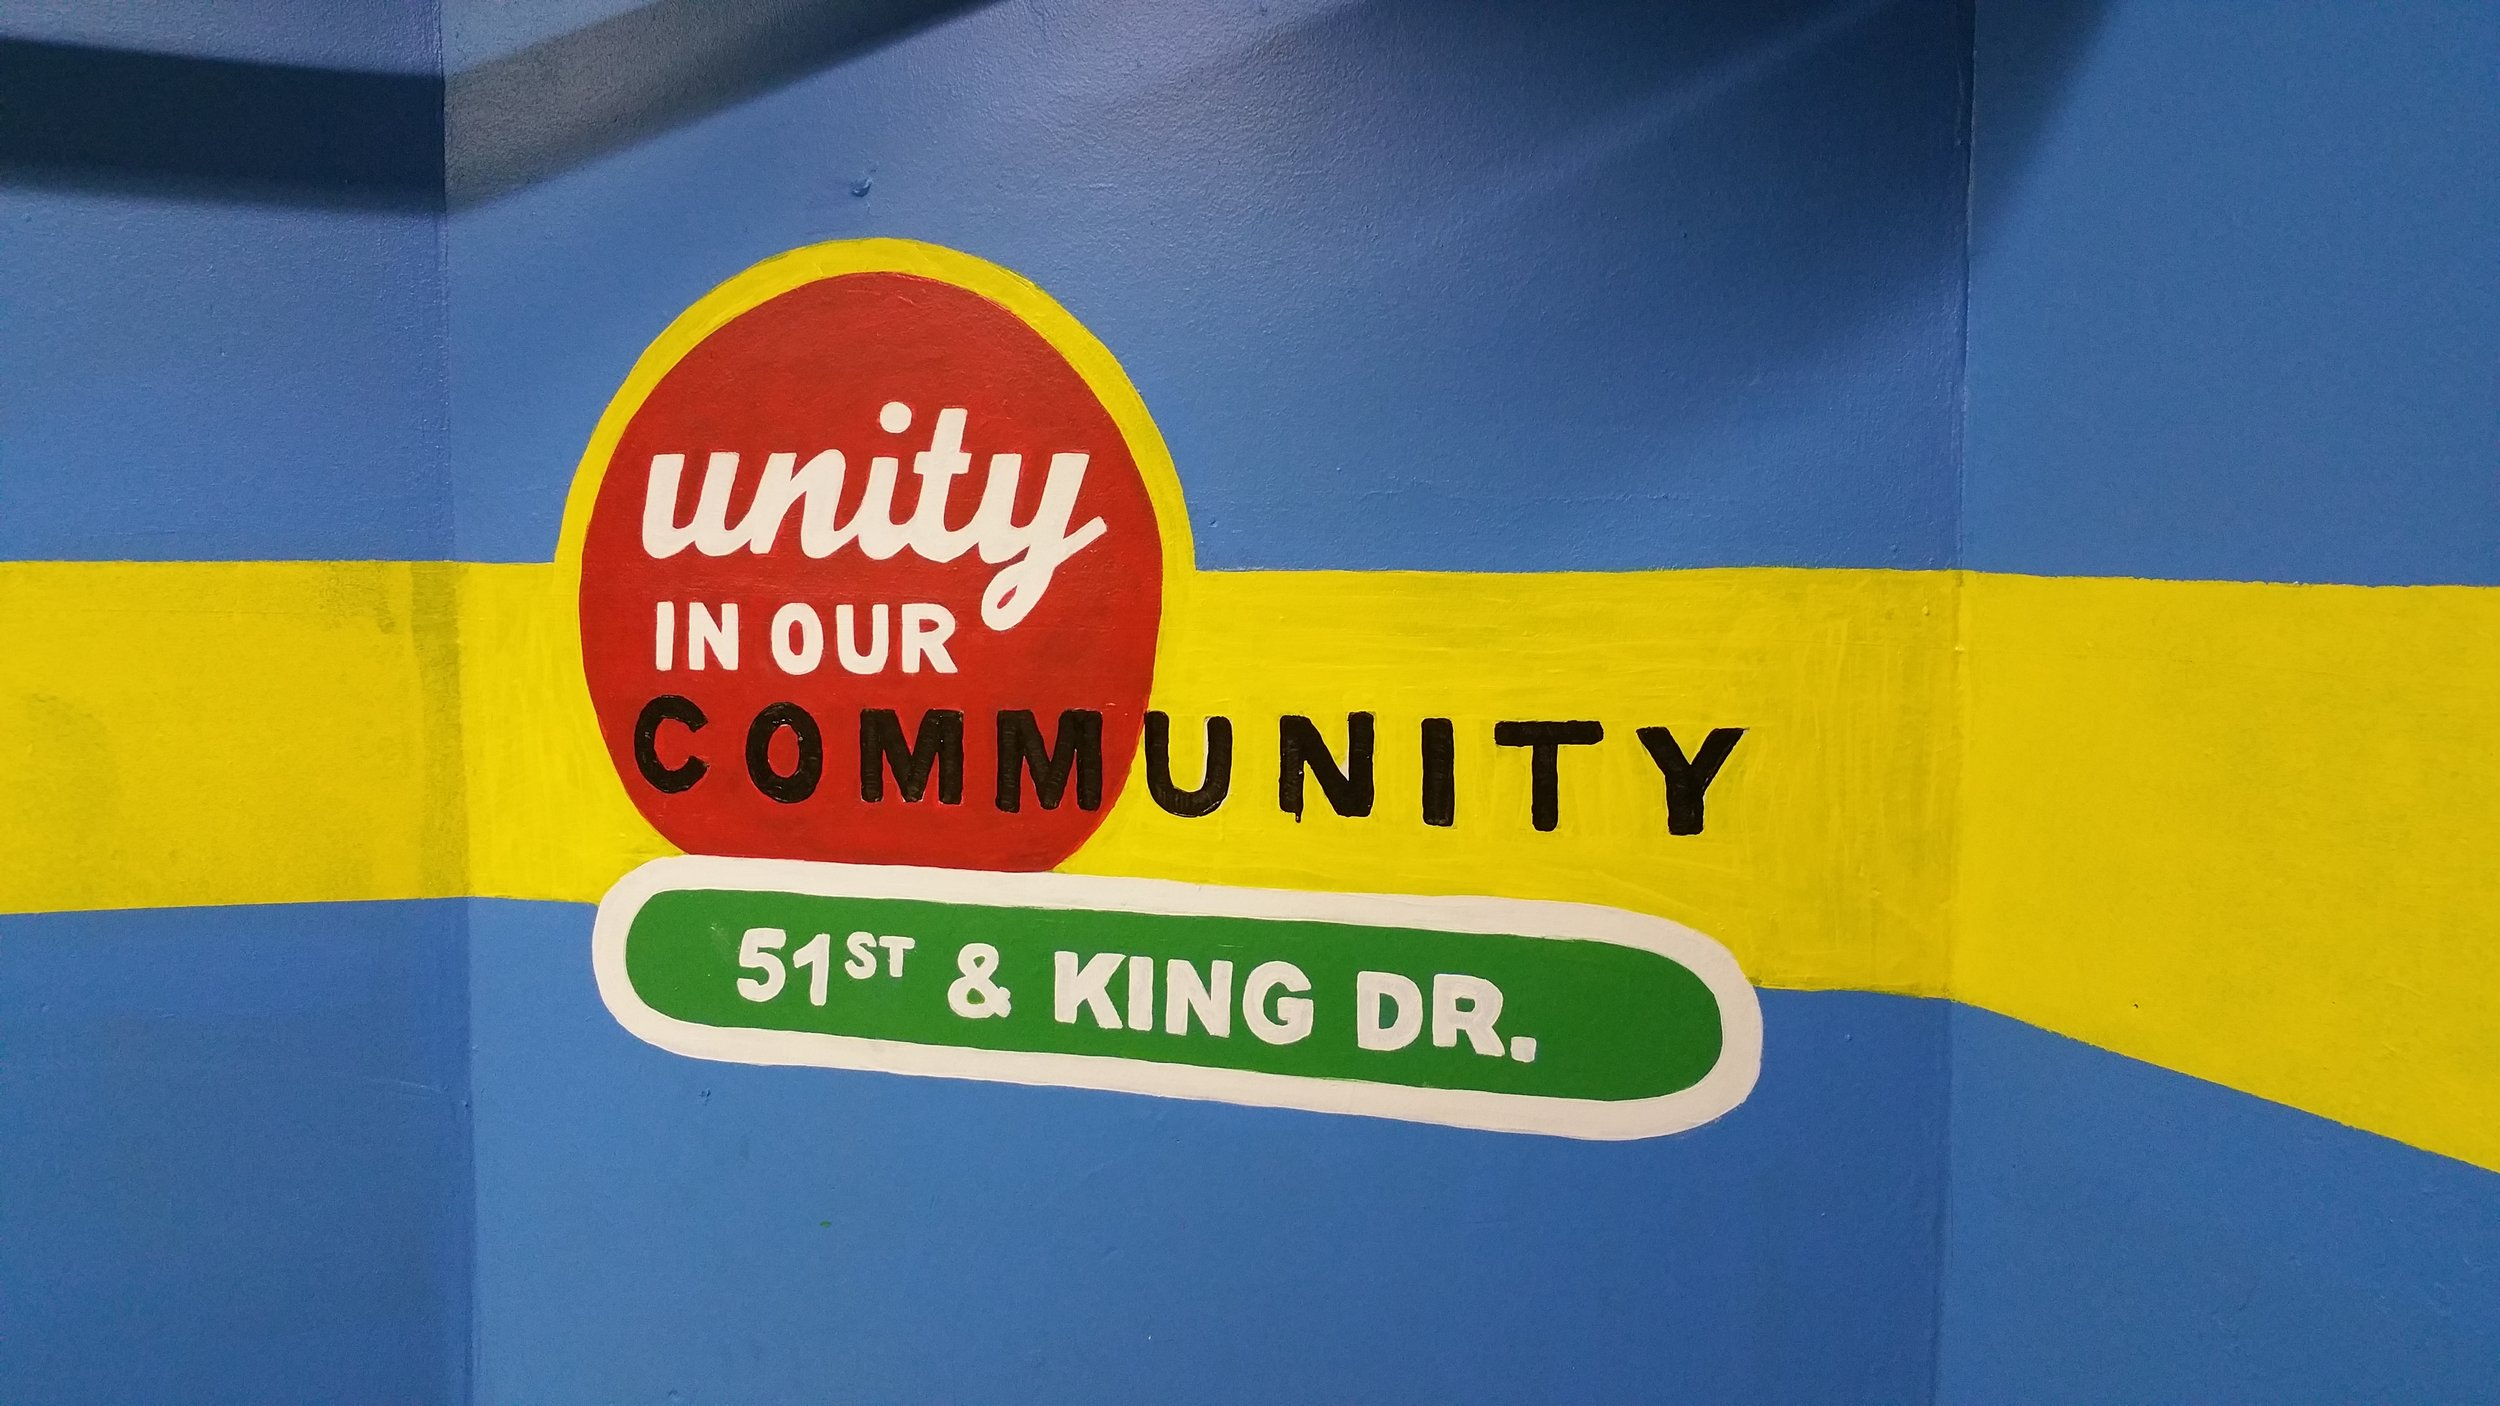 51st & King Unity in Community 2.jpg